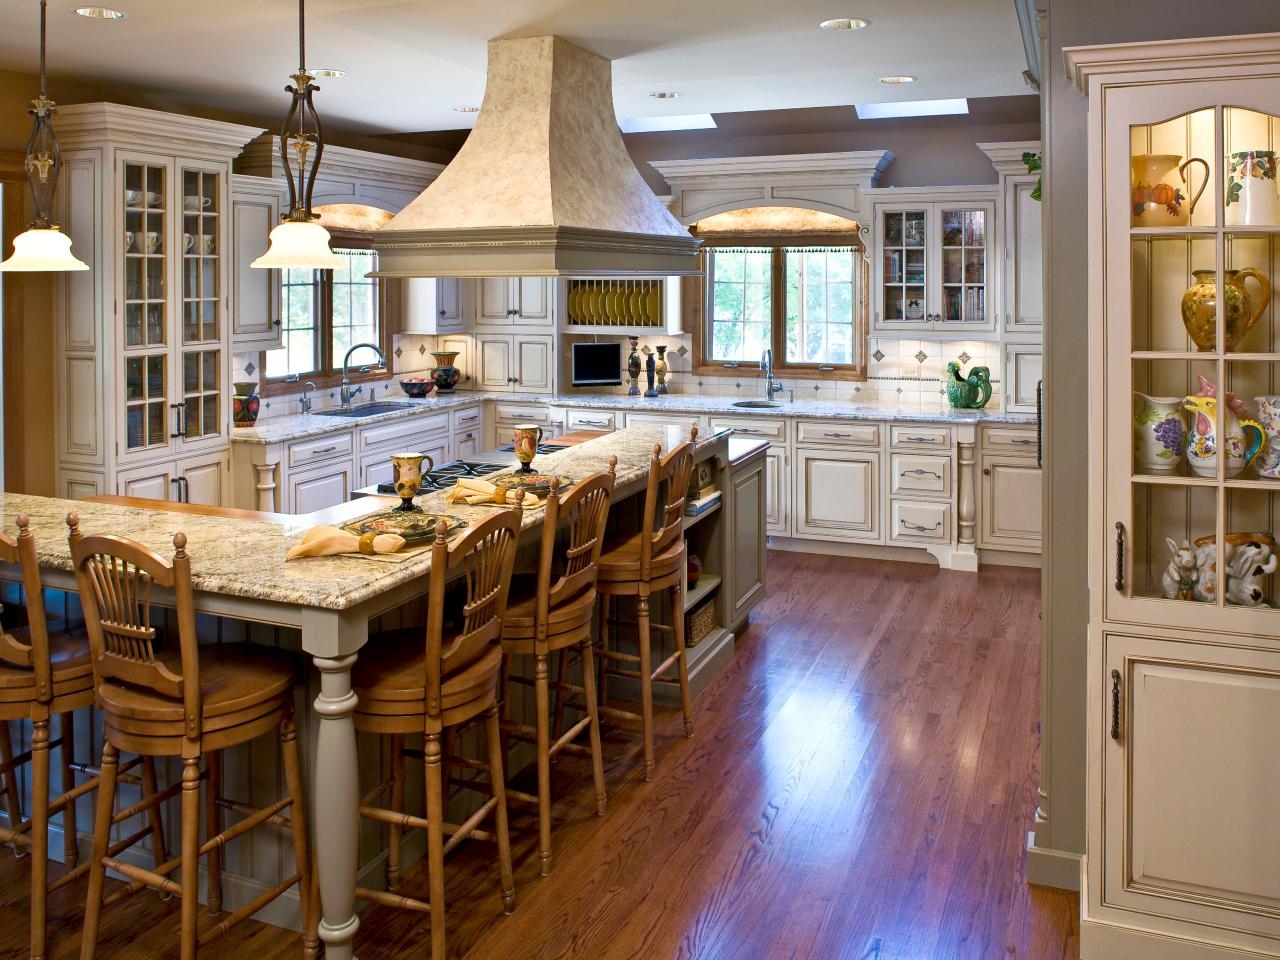 Kitchen Island Renovations kitchen island design ideas: pictures, options & tips | hgtv